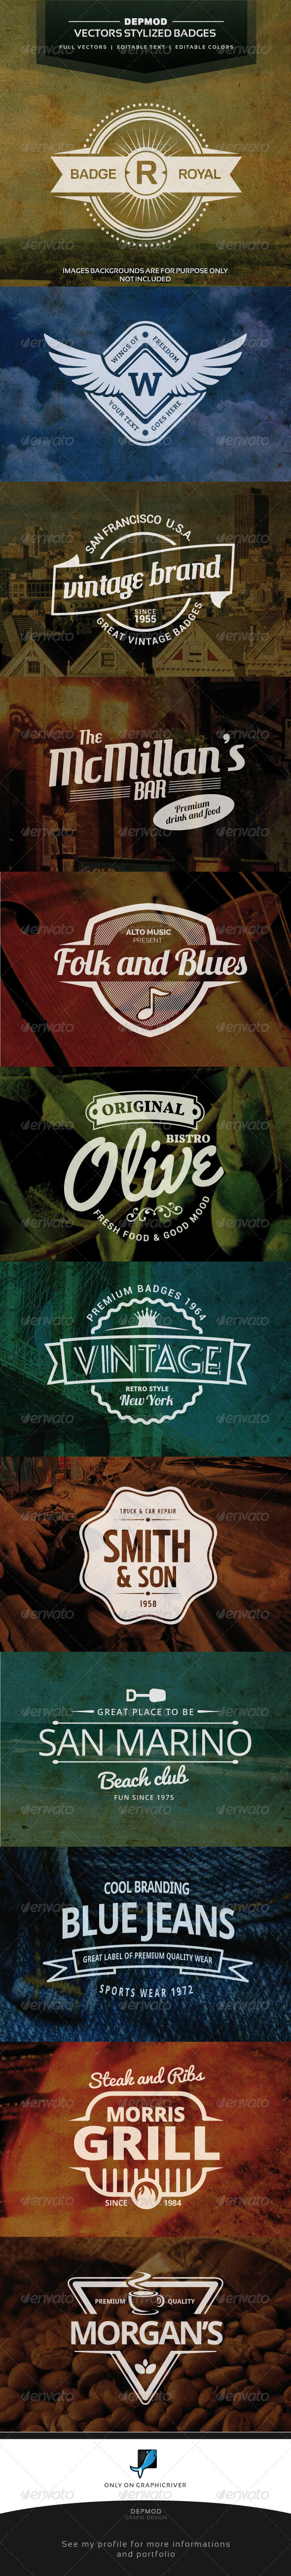 12 Retro Vintage Badges - Badges & Stickers Web Elements